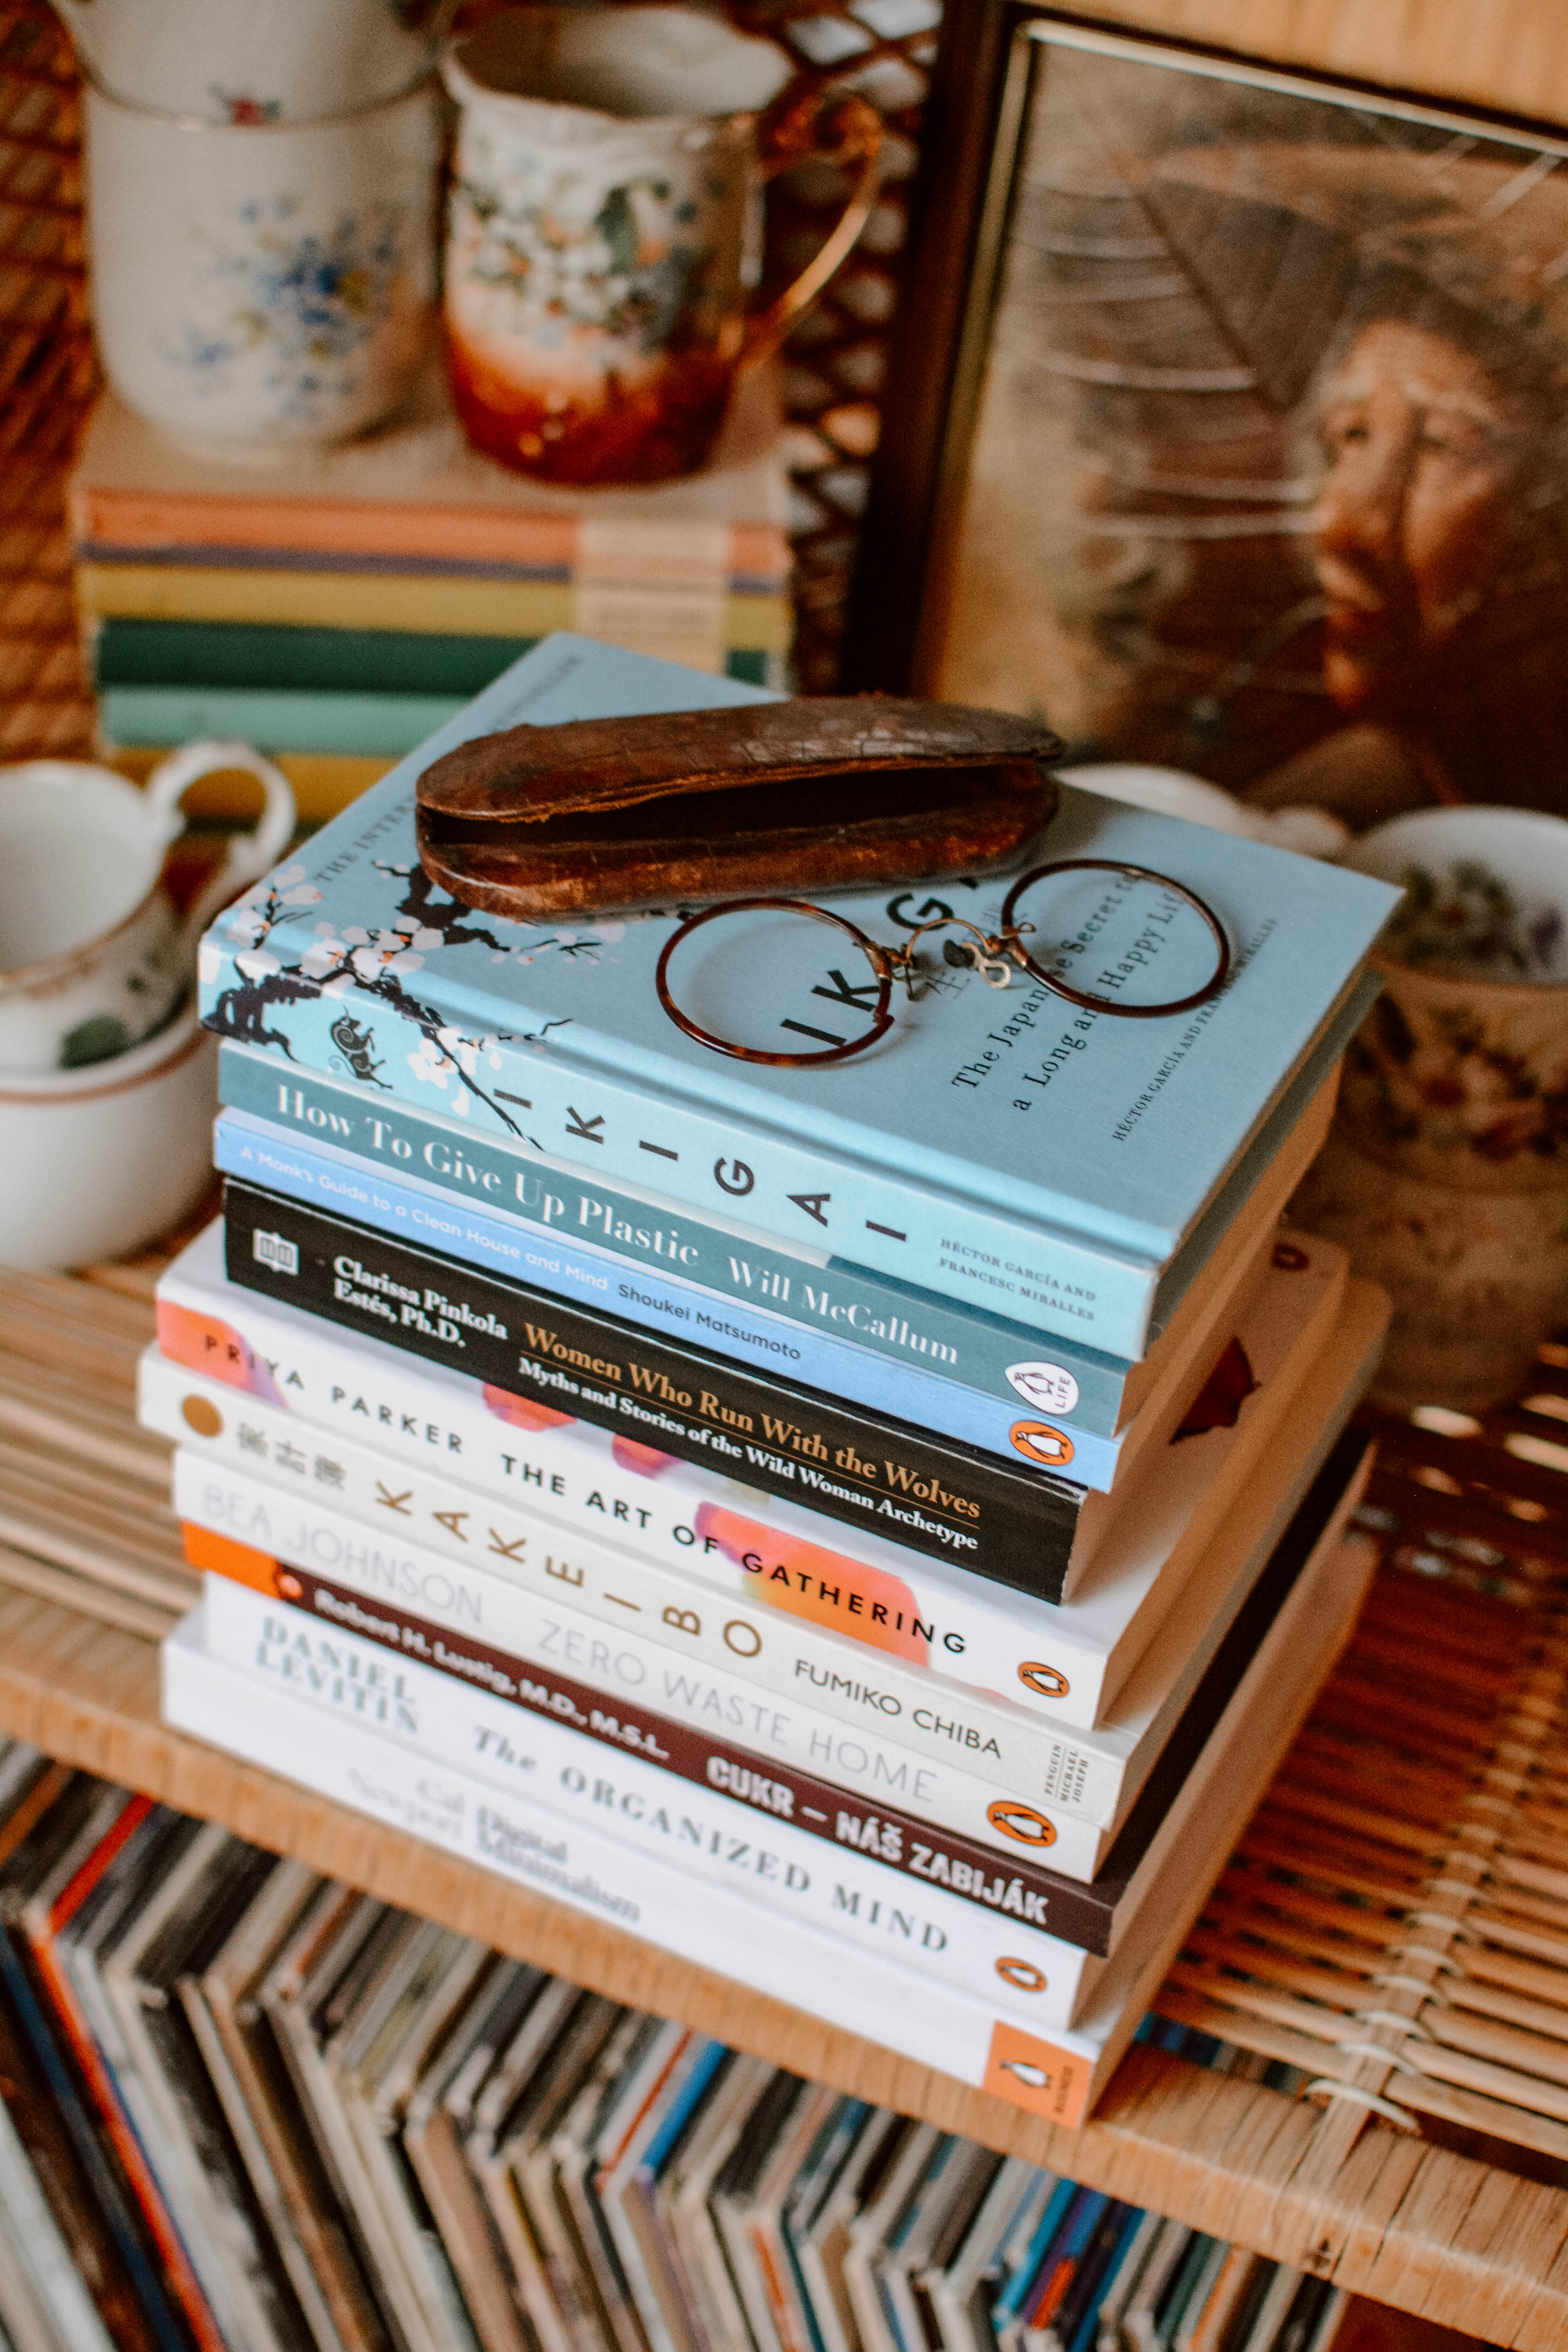 10 popular personal development books I've read and loved